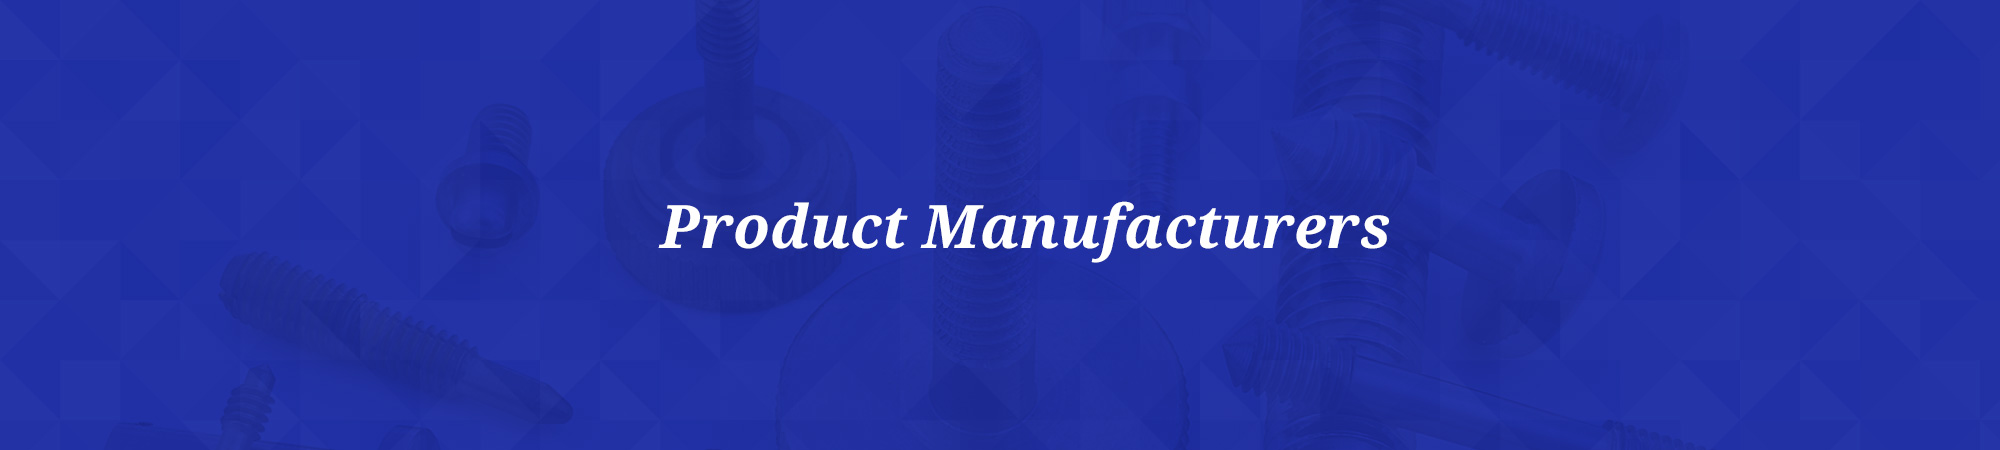 Product Manufacturers